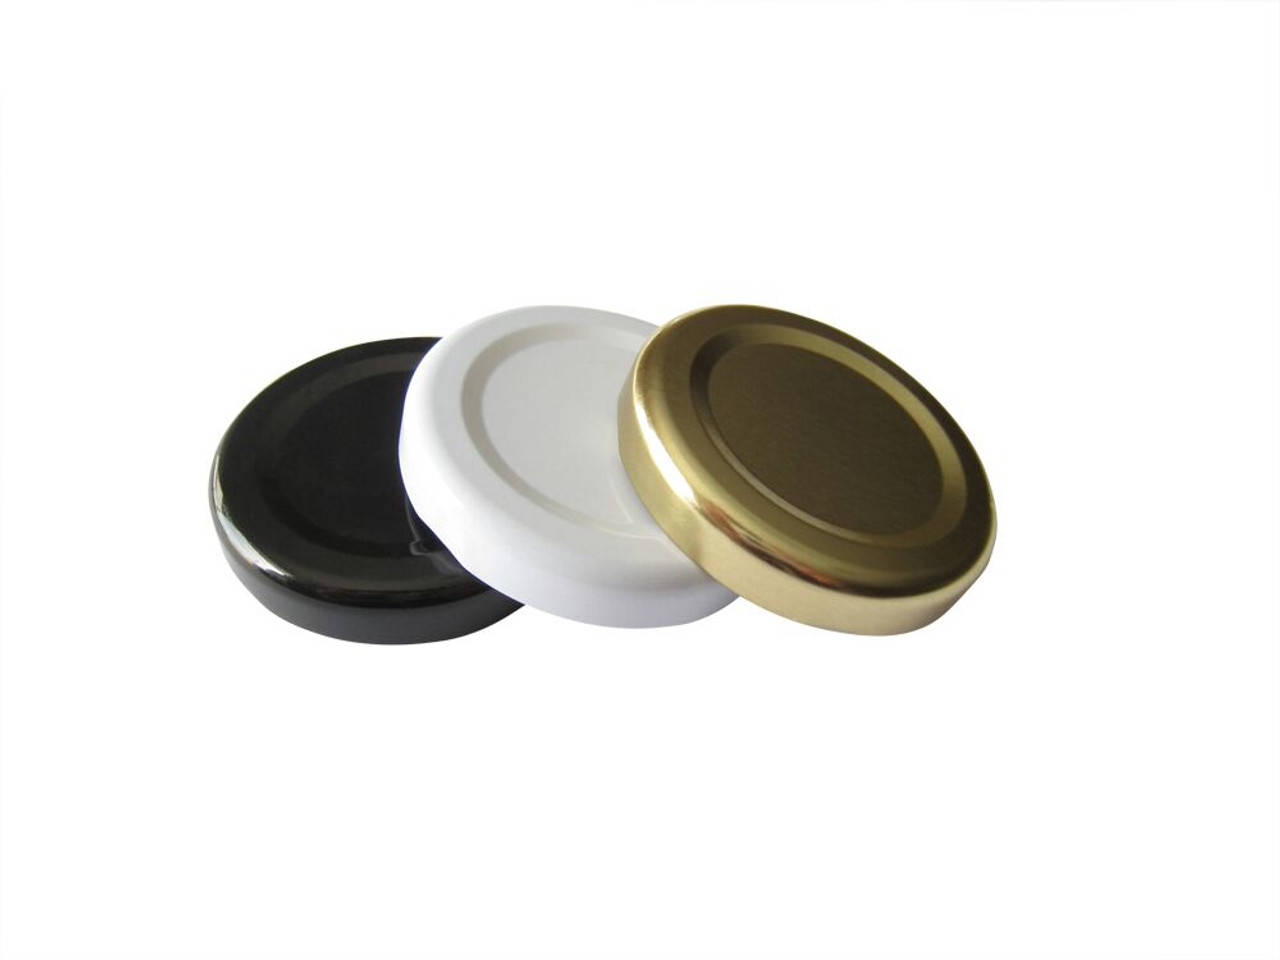 Nakpunar Plastisol Lined 48TW lug lids in gold, white and black